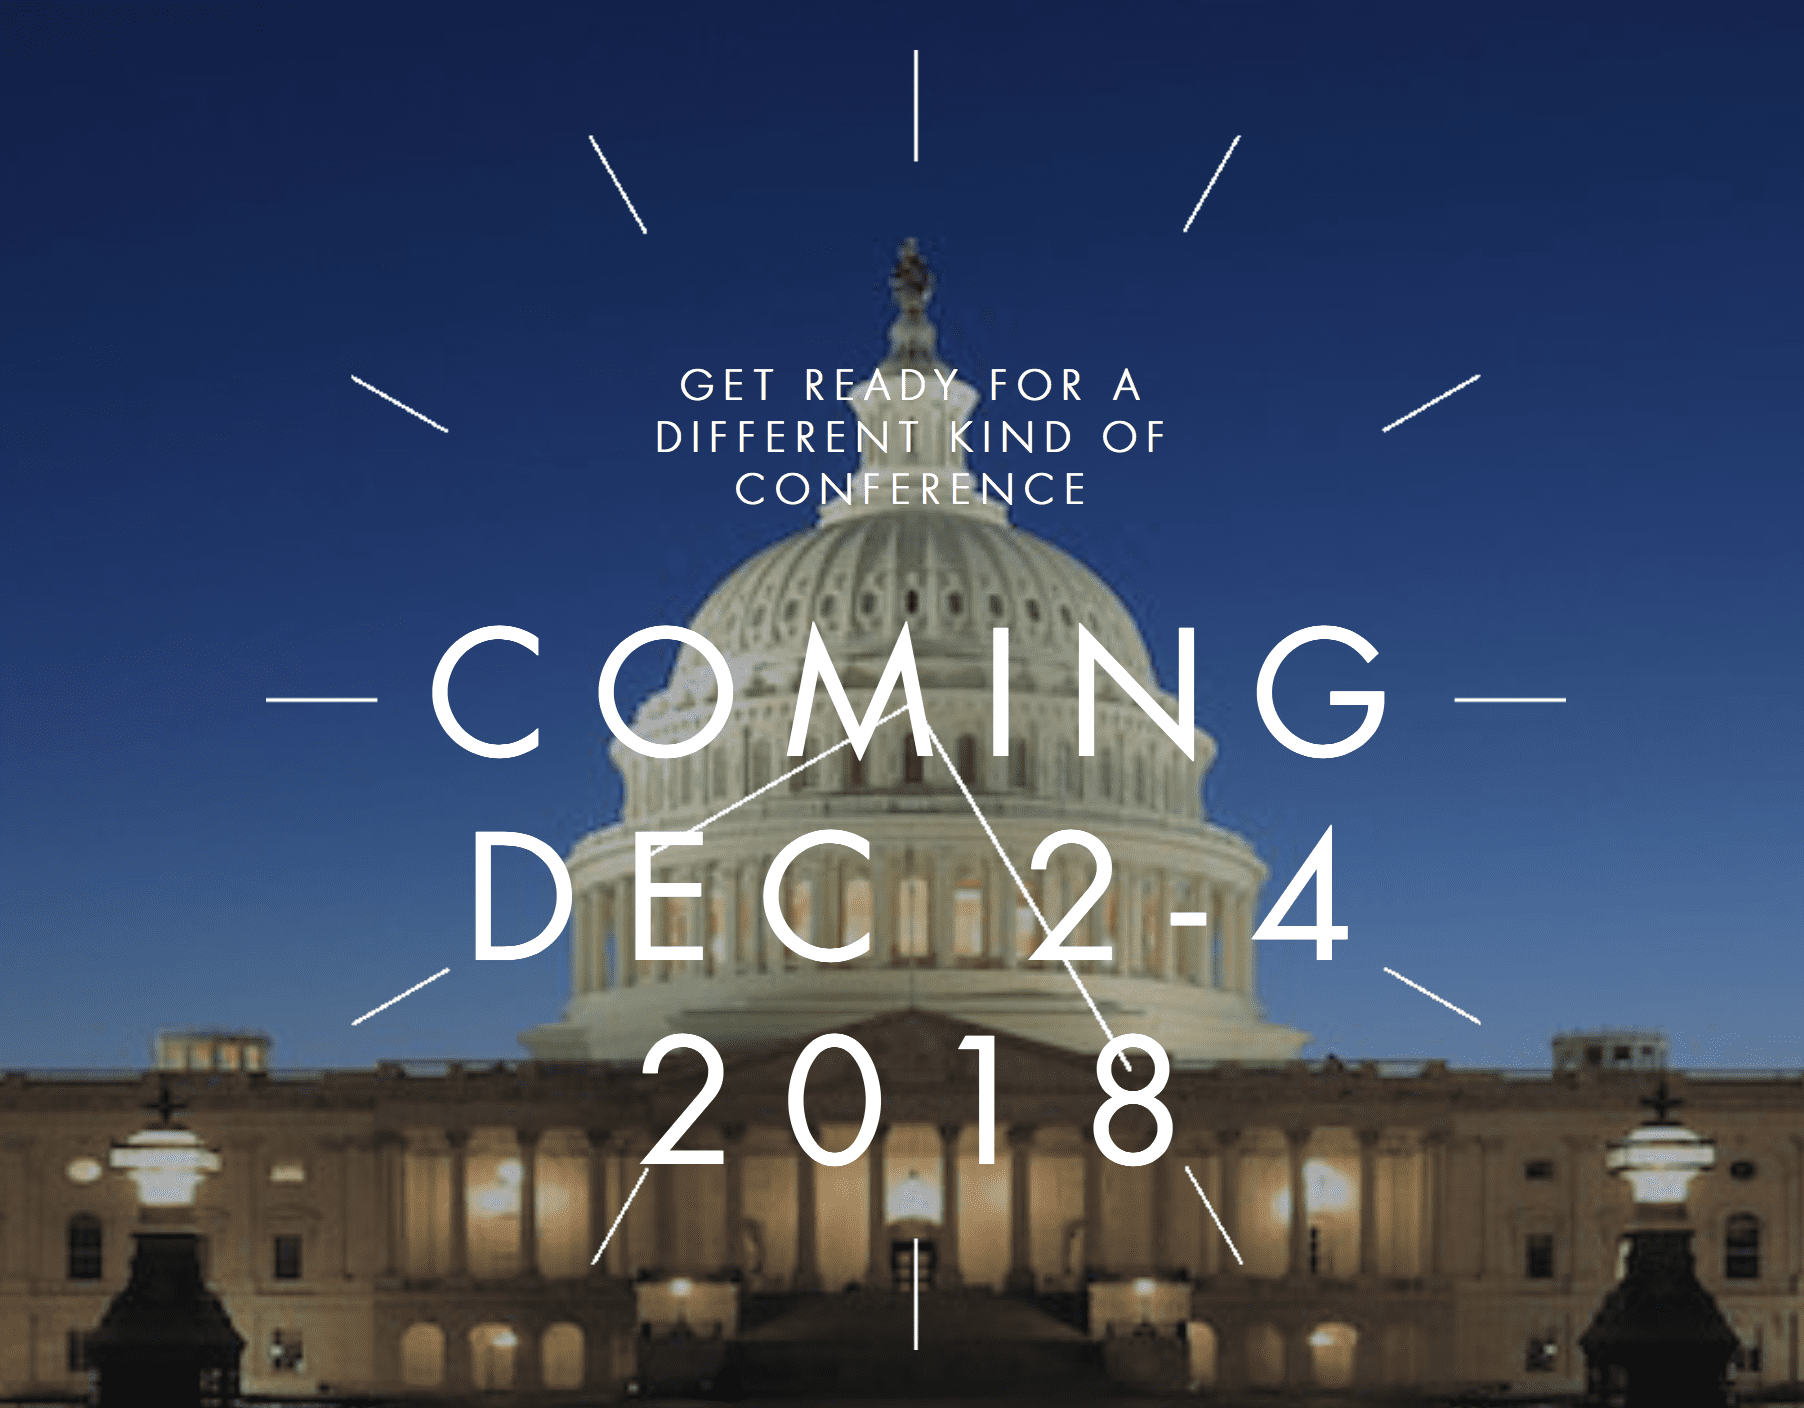 Get read for a different kind of conference coming dec 2-4 2018